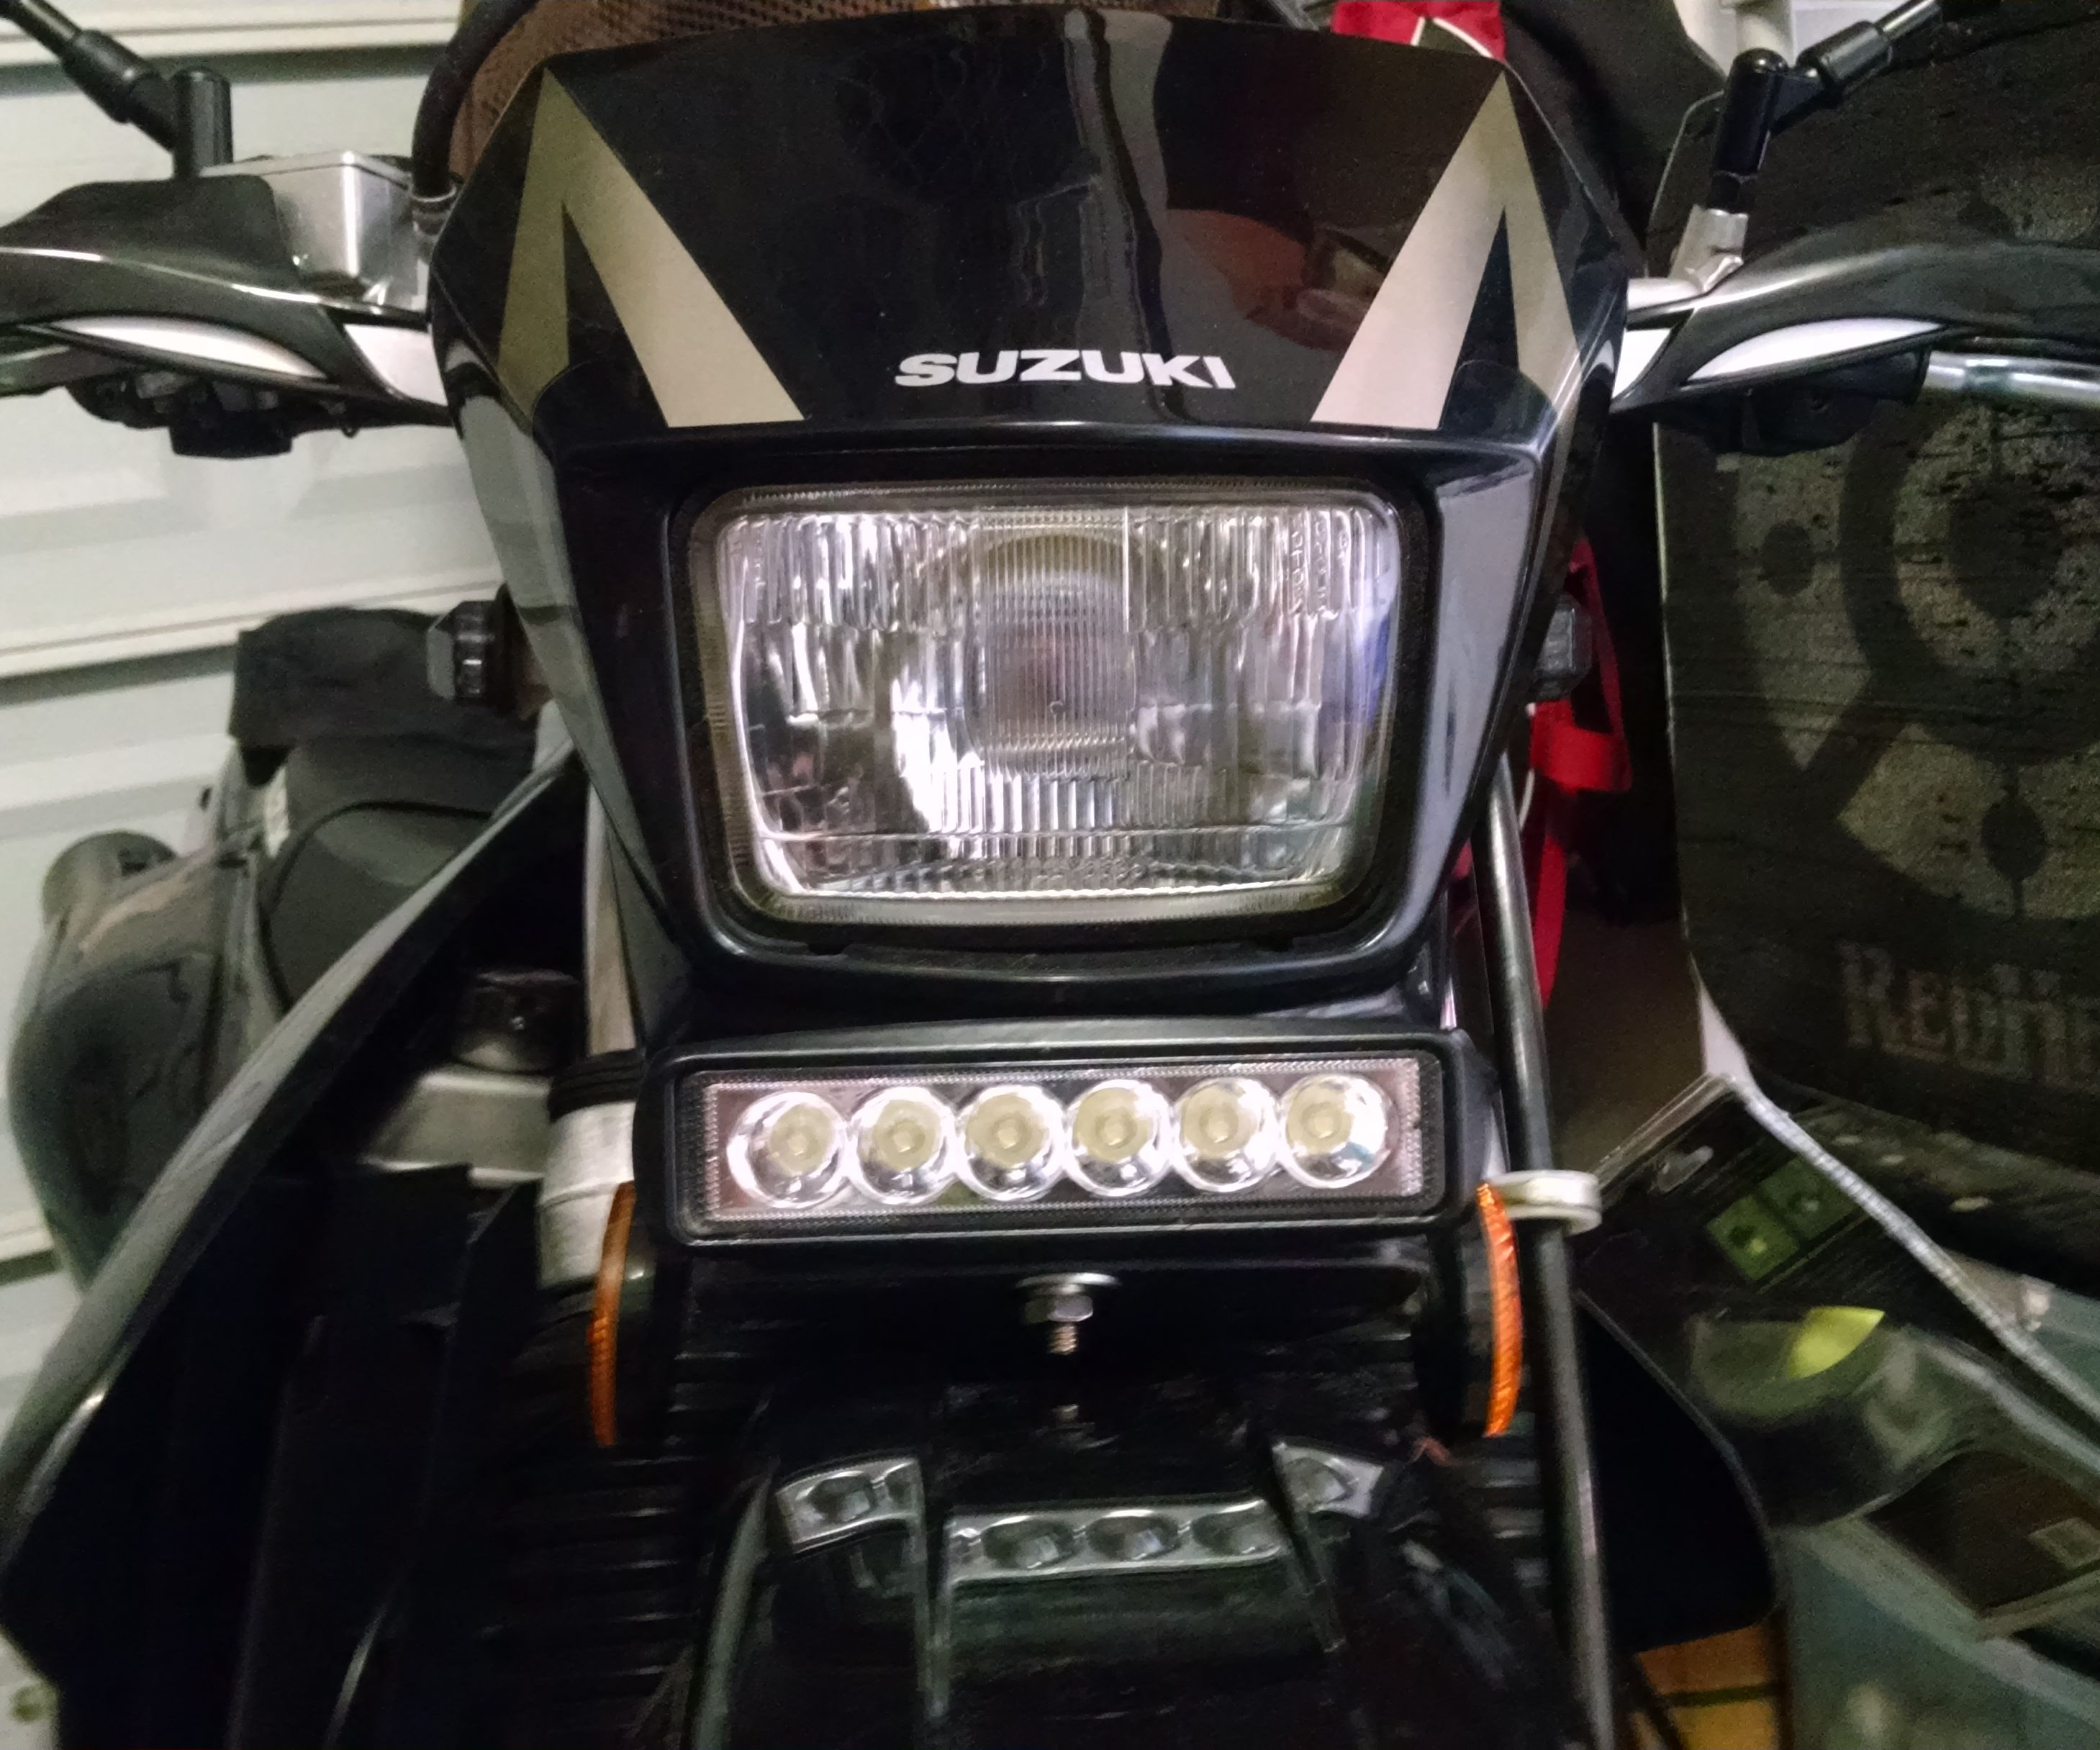 Led Light Bar Wiring Also Wiring Diagram For Led Lights On Motorcycle